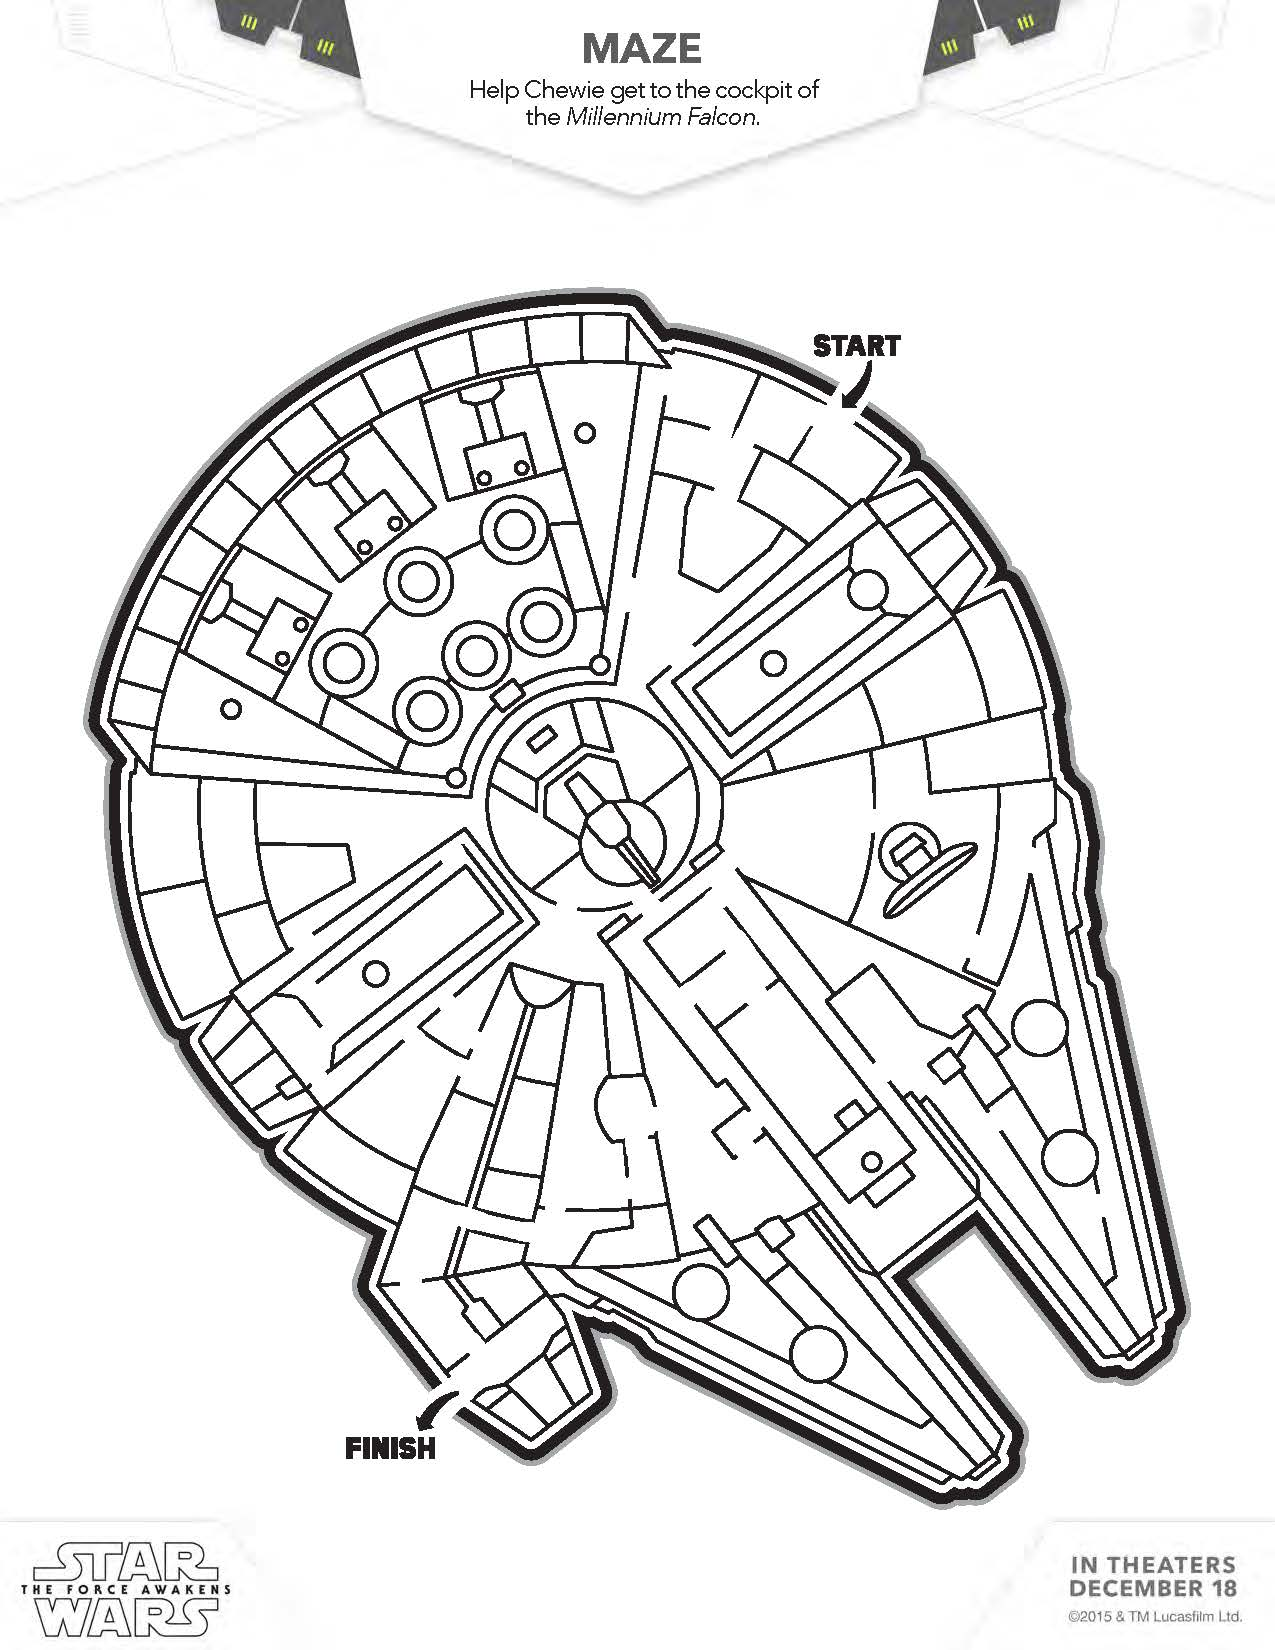 milenium falcon maze download star wars logo star wars coloring